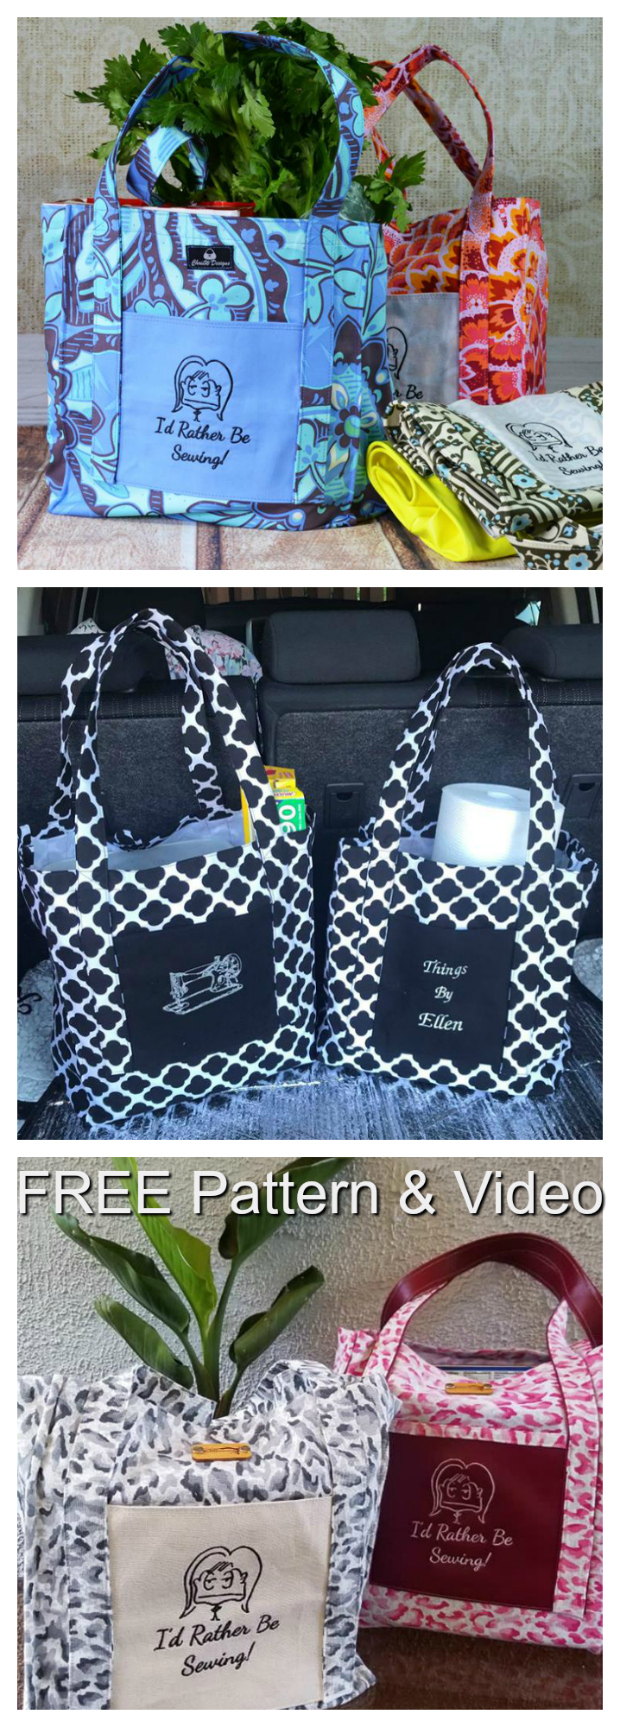 Here is a FREE pattern that comes with a FREE video showing you how to make this Grocery Tote bag. It's a simple project for a beginner sewer.